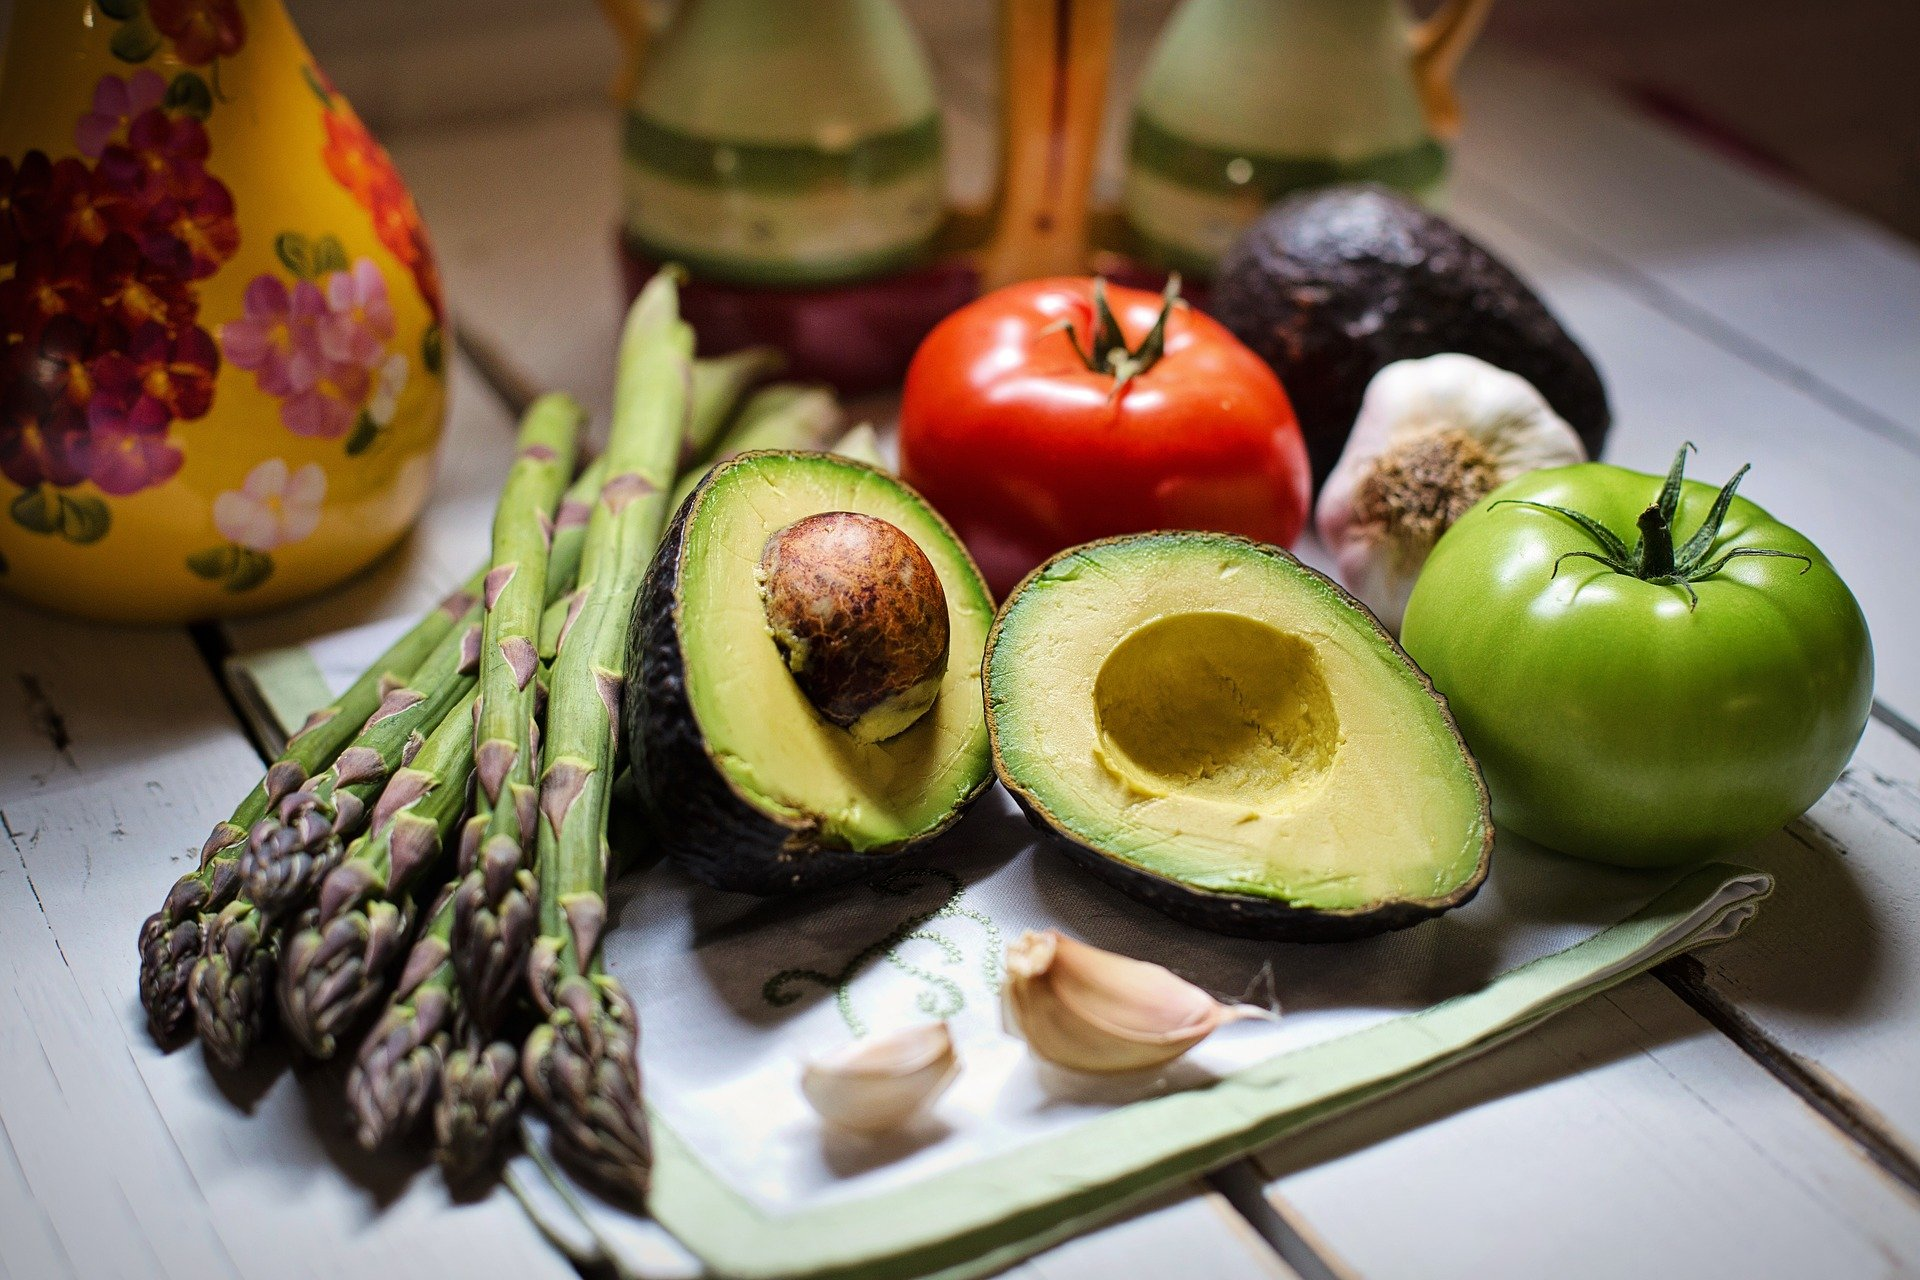 Avocado and Other Veggies this World Vegan Month | Veteran Car Donations